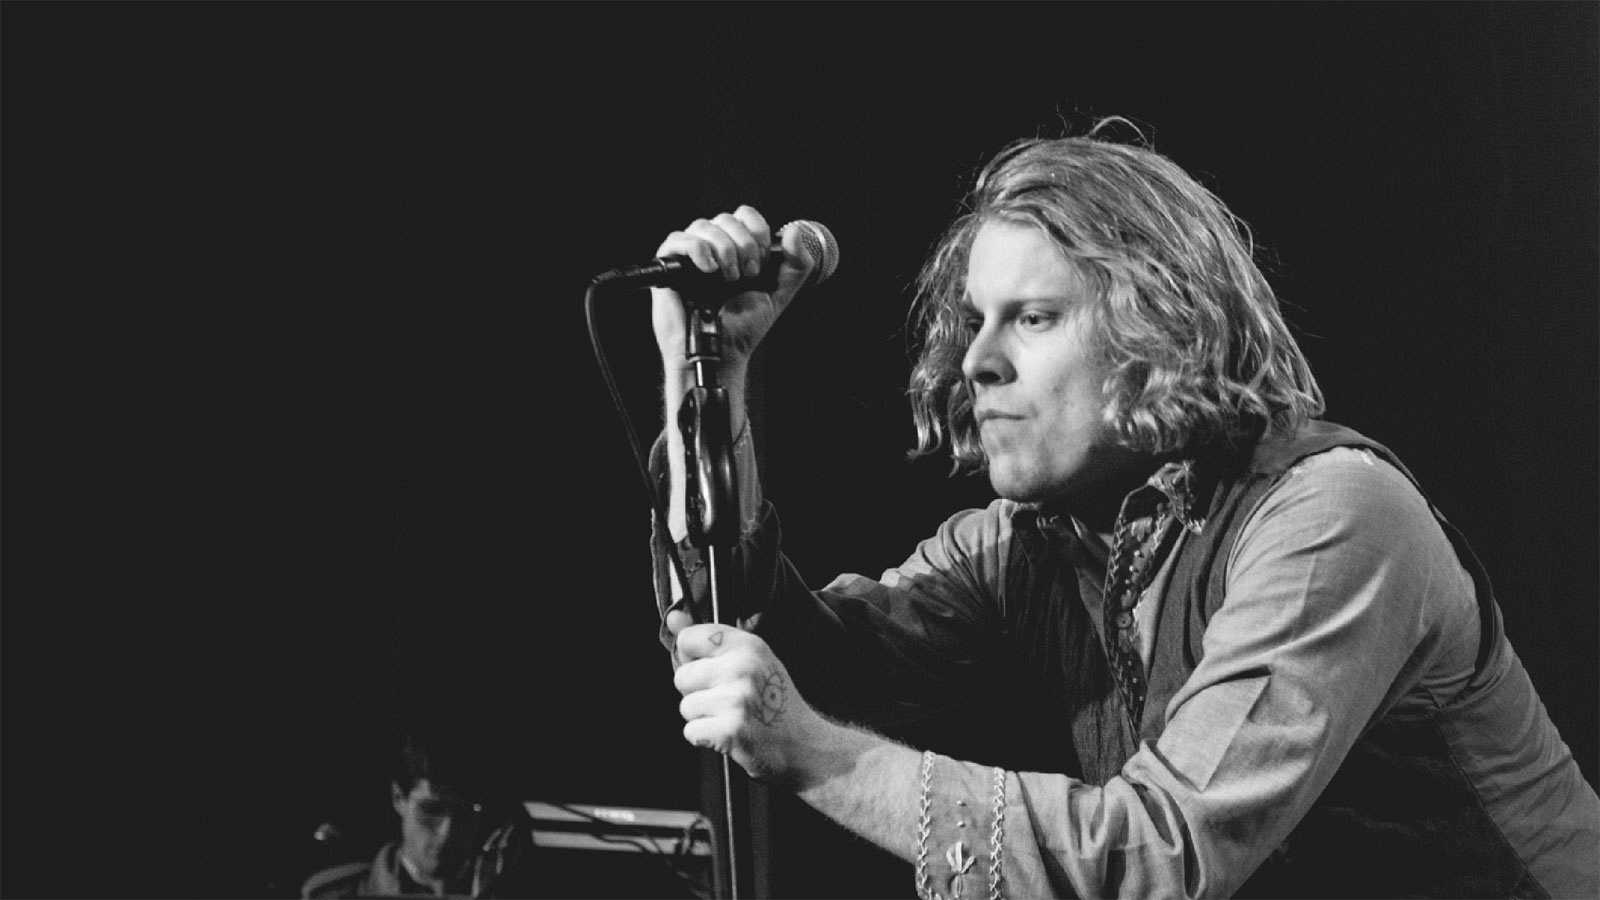 Na Na Na - Ty Segall, The Strokes y Cigarettes After Sex - 17/12/18 - escuchar ahora